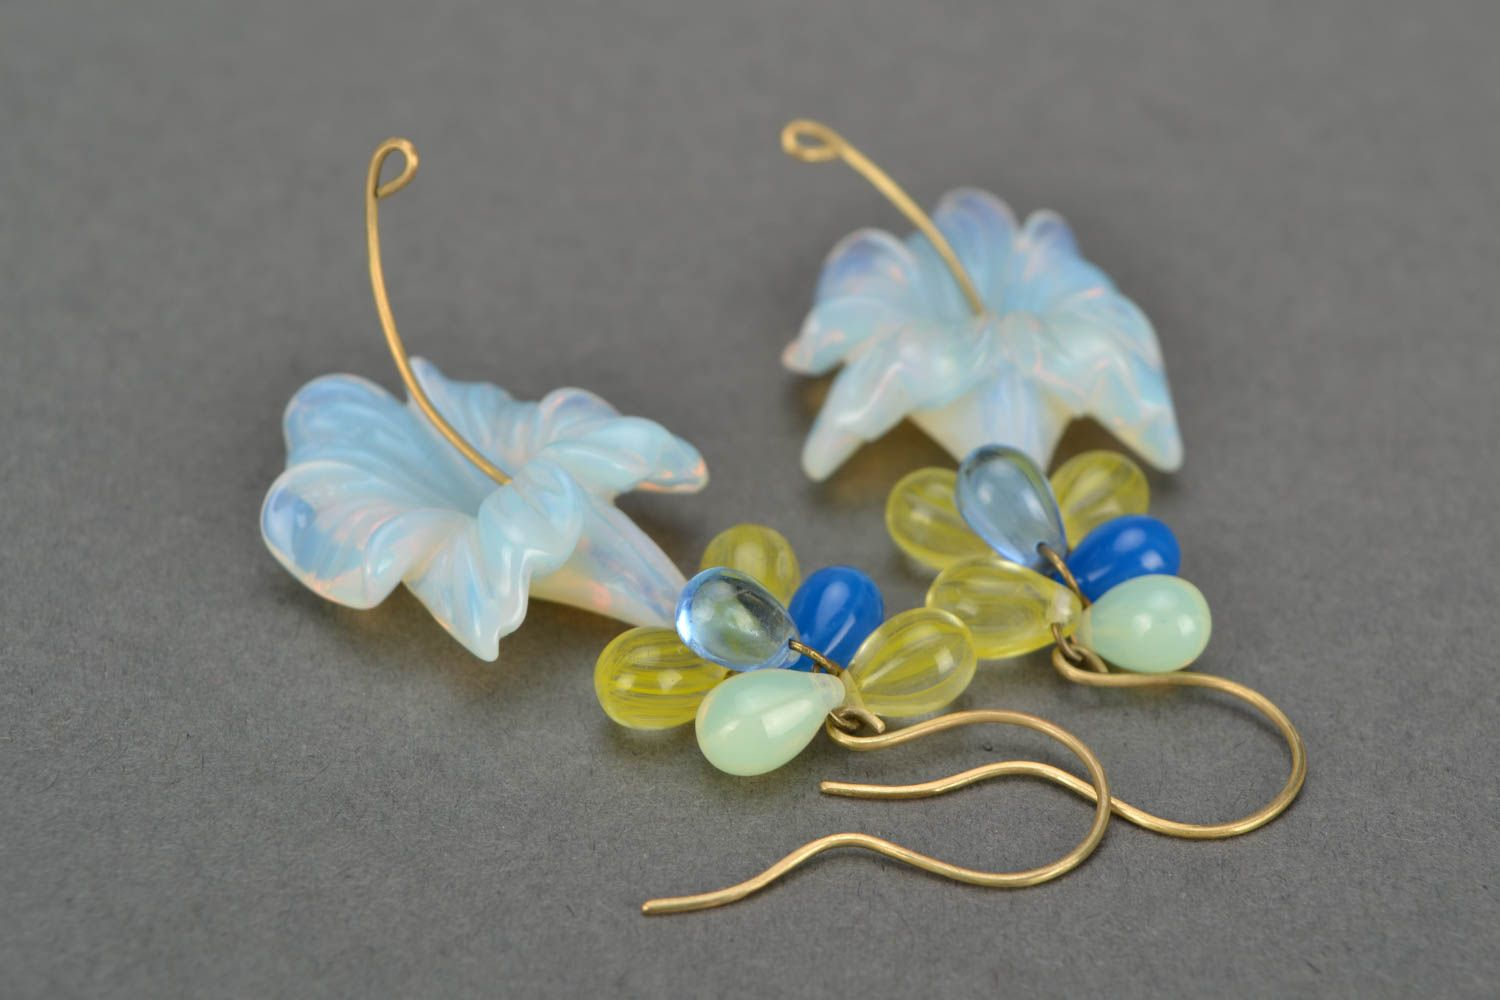 Handmade designer dangling earrings with tender Czech glass flowers photo 3